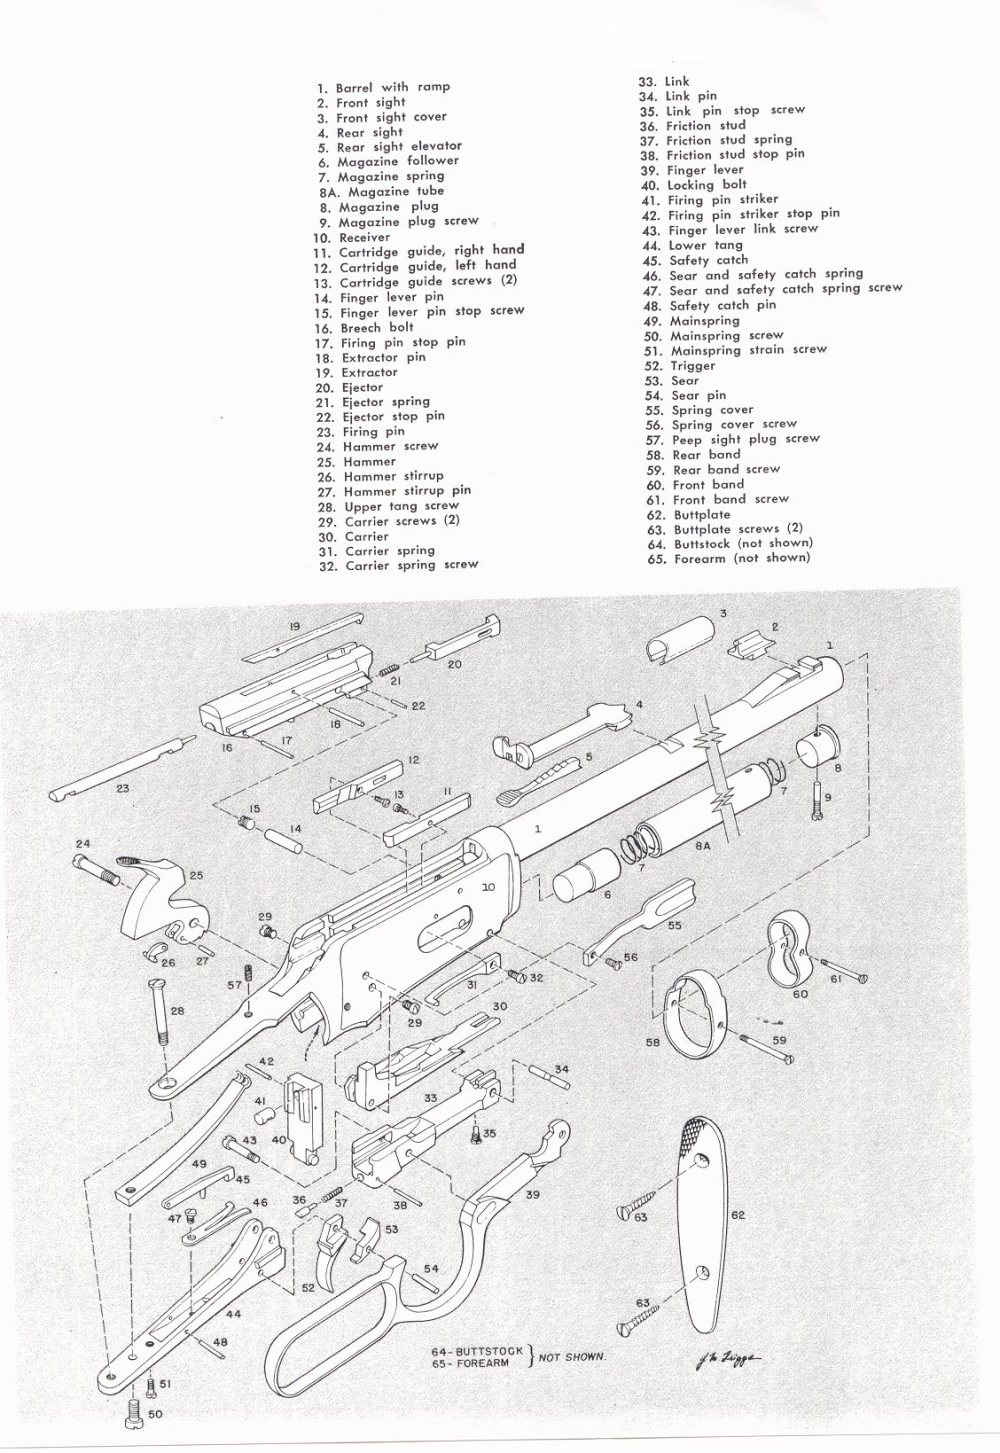 medium resolution of gun parts for many winchester models winchester levera action rifle parts winchester hi power rifle parts winchester hi power automatic rifle parts